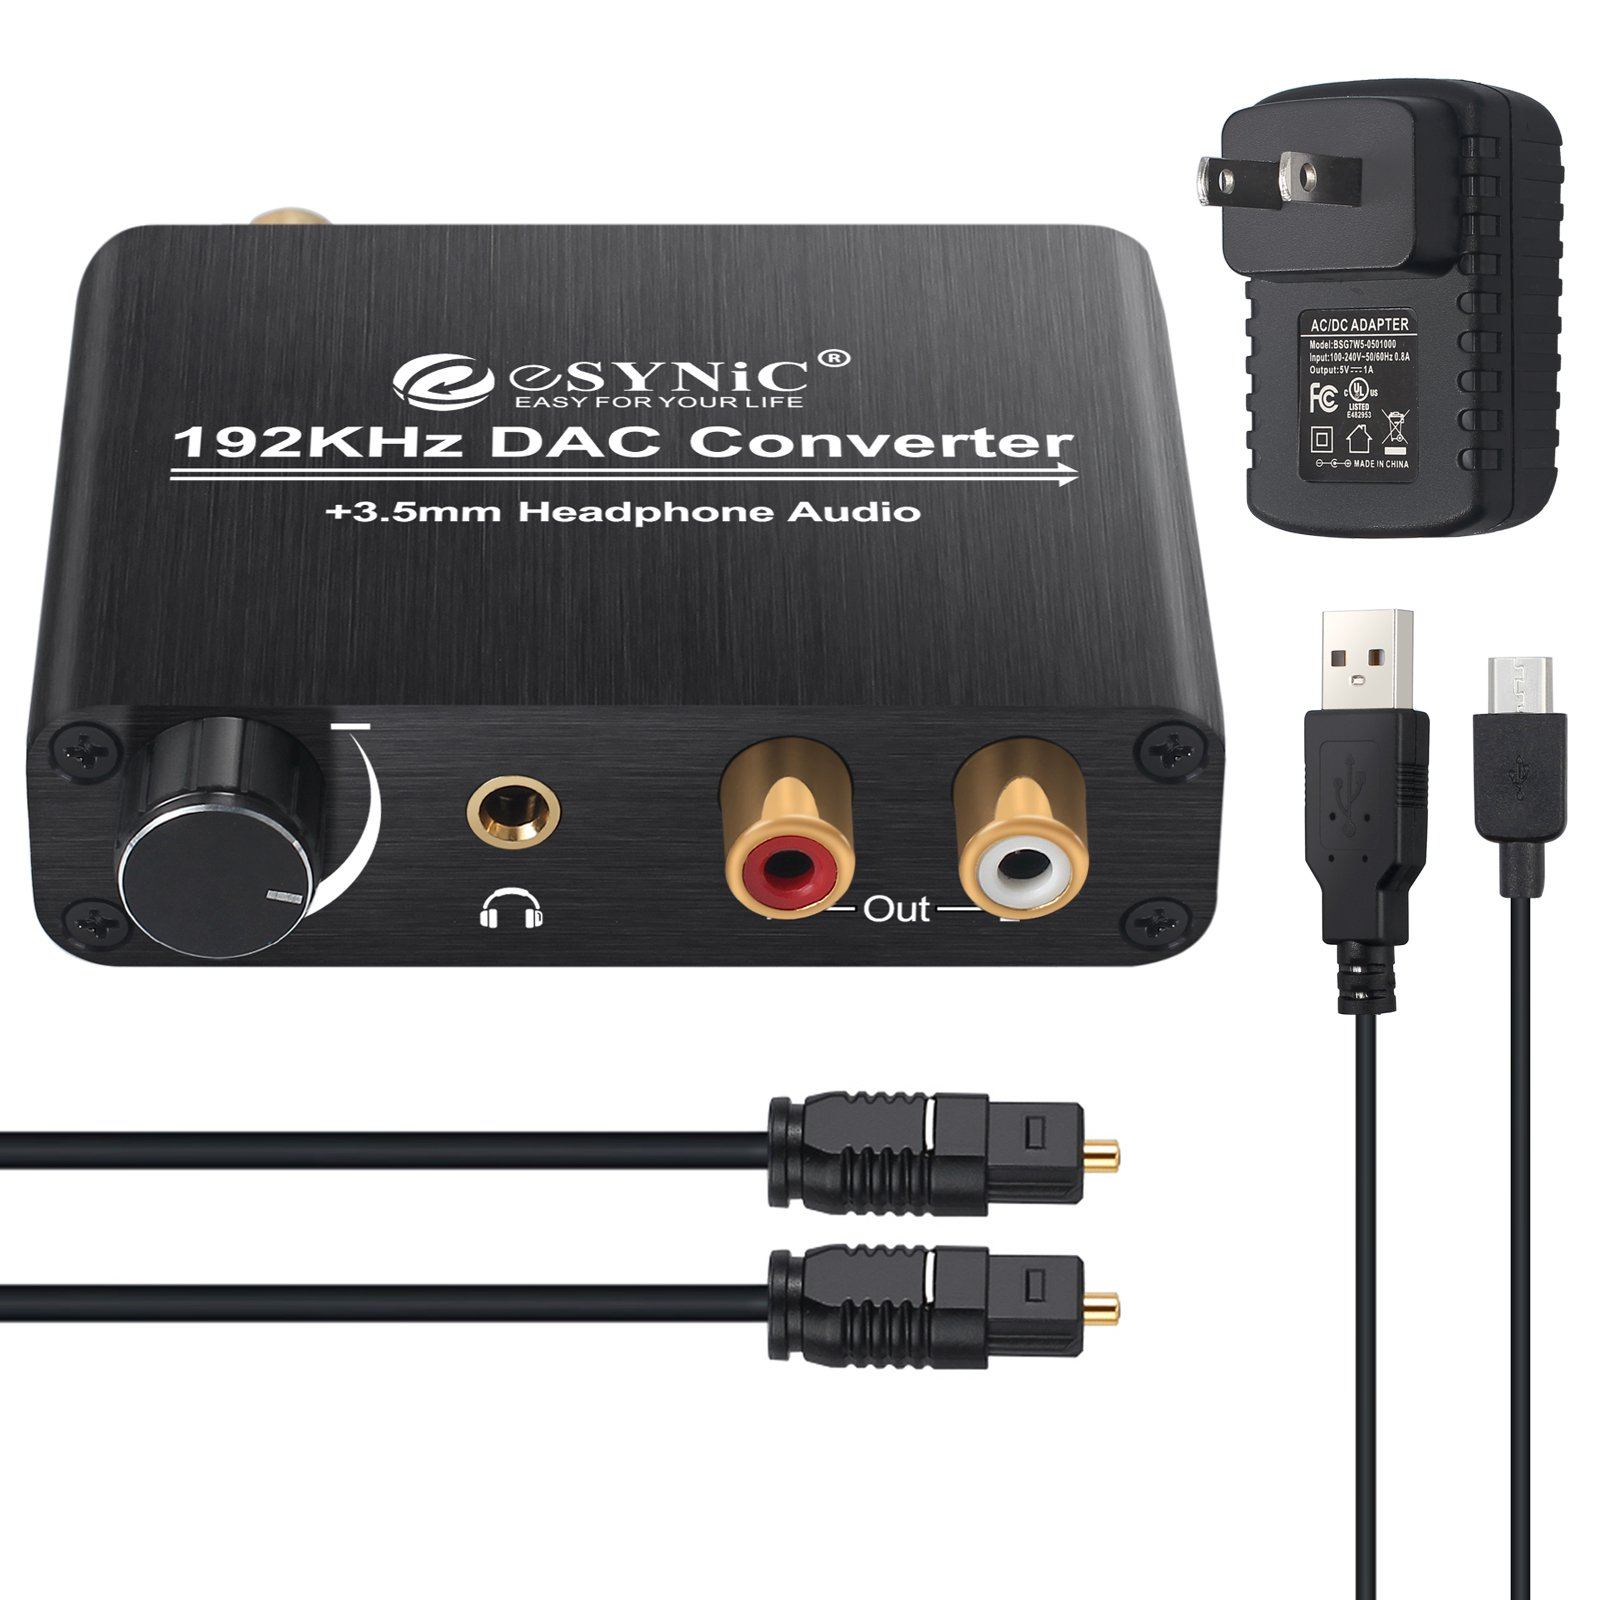 192kHz DAC Converter ESYNIC Digital to Analog Converter Volume Control Digital Coaxial Toslink to Analog Stereo L/R RCA 3.5mm Audio Adapter for Xbox DVD Blu-ray PS3 PS4 AV Amps Cinema Systems -US Plug by eSynic